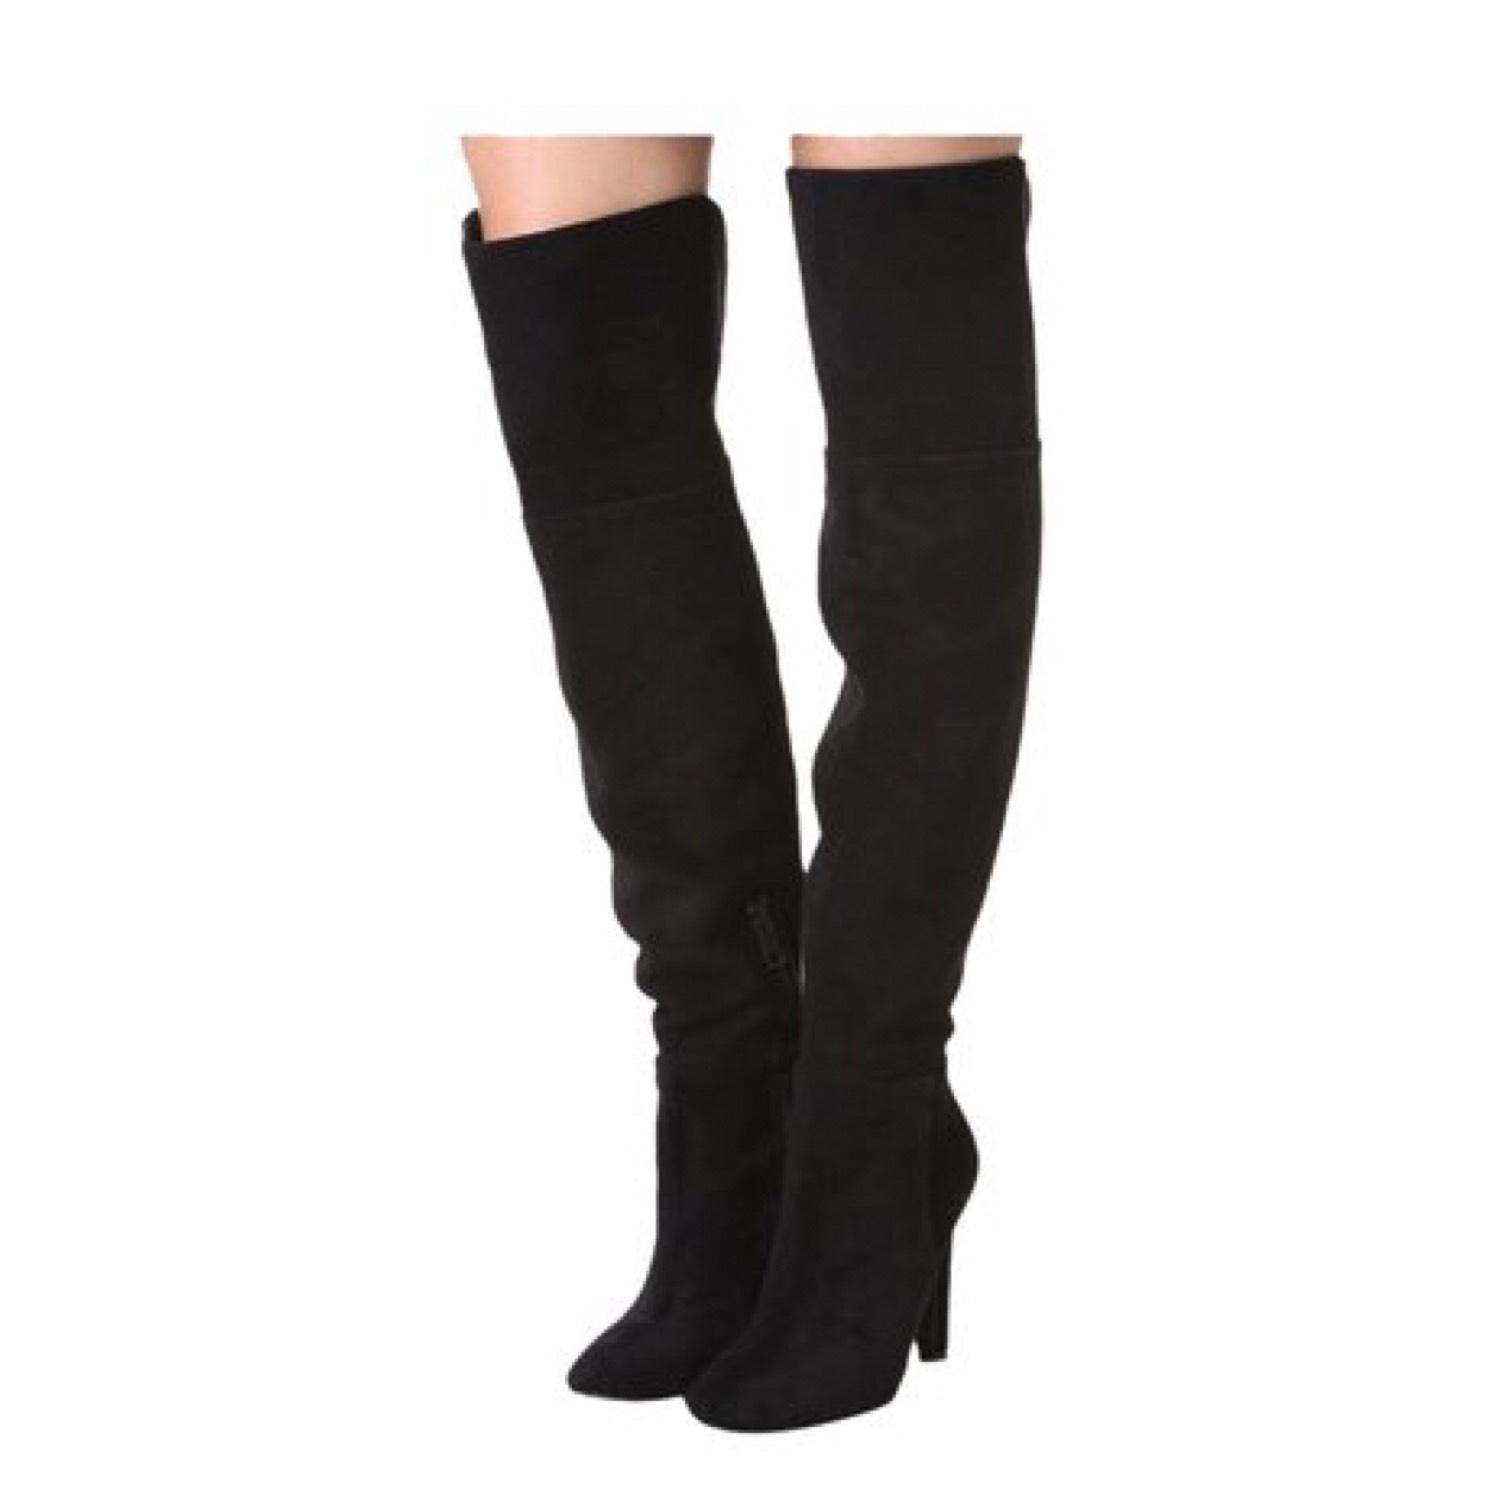 Over The Boots/Booties Size US 8 Regular (M, B)